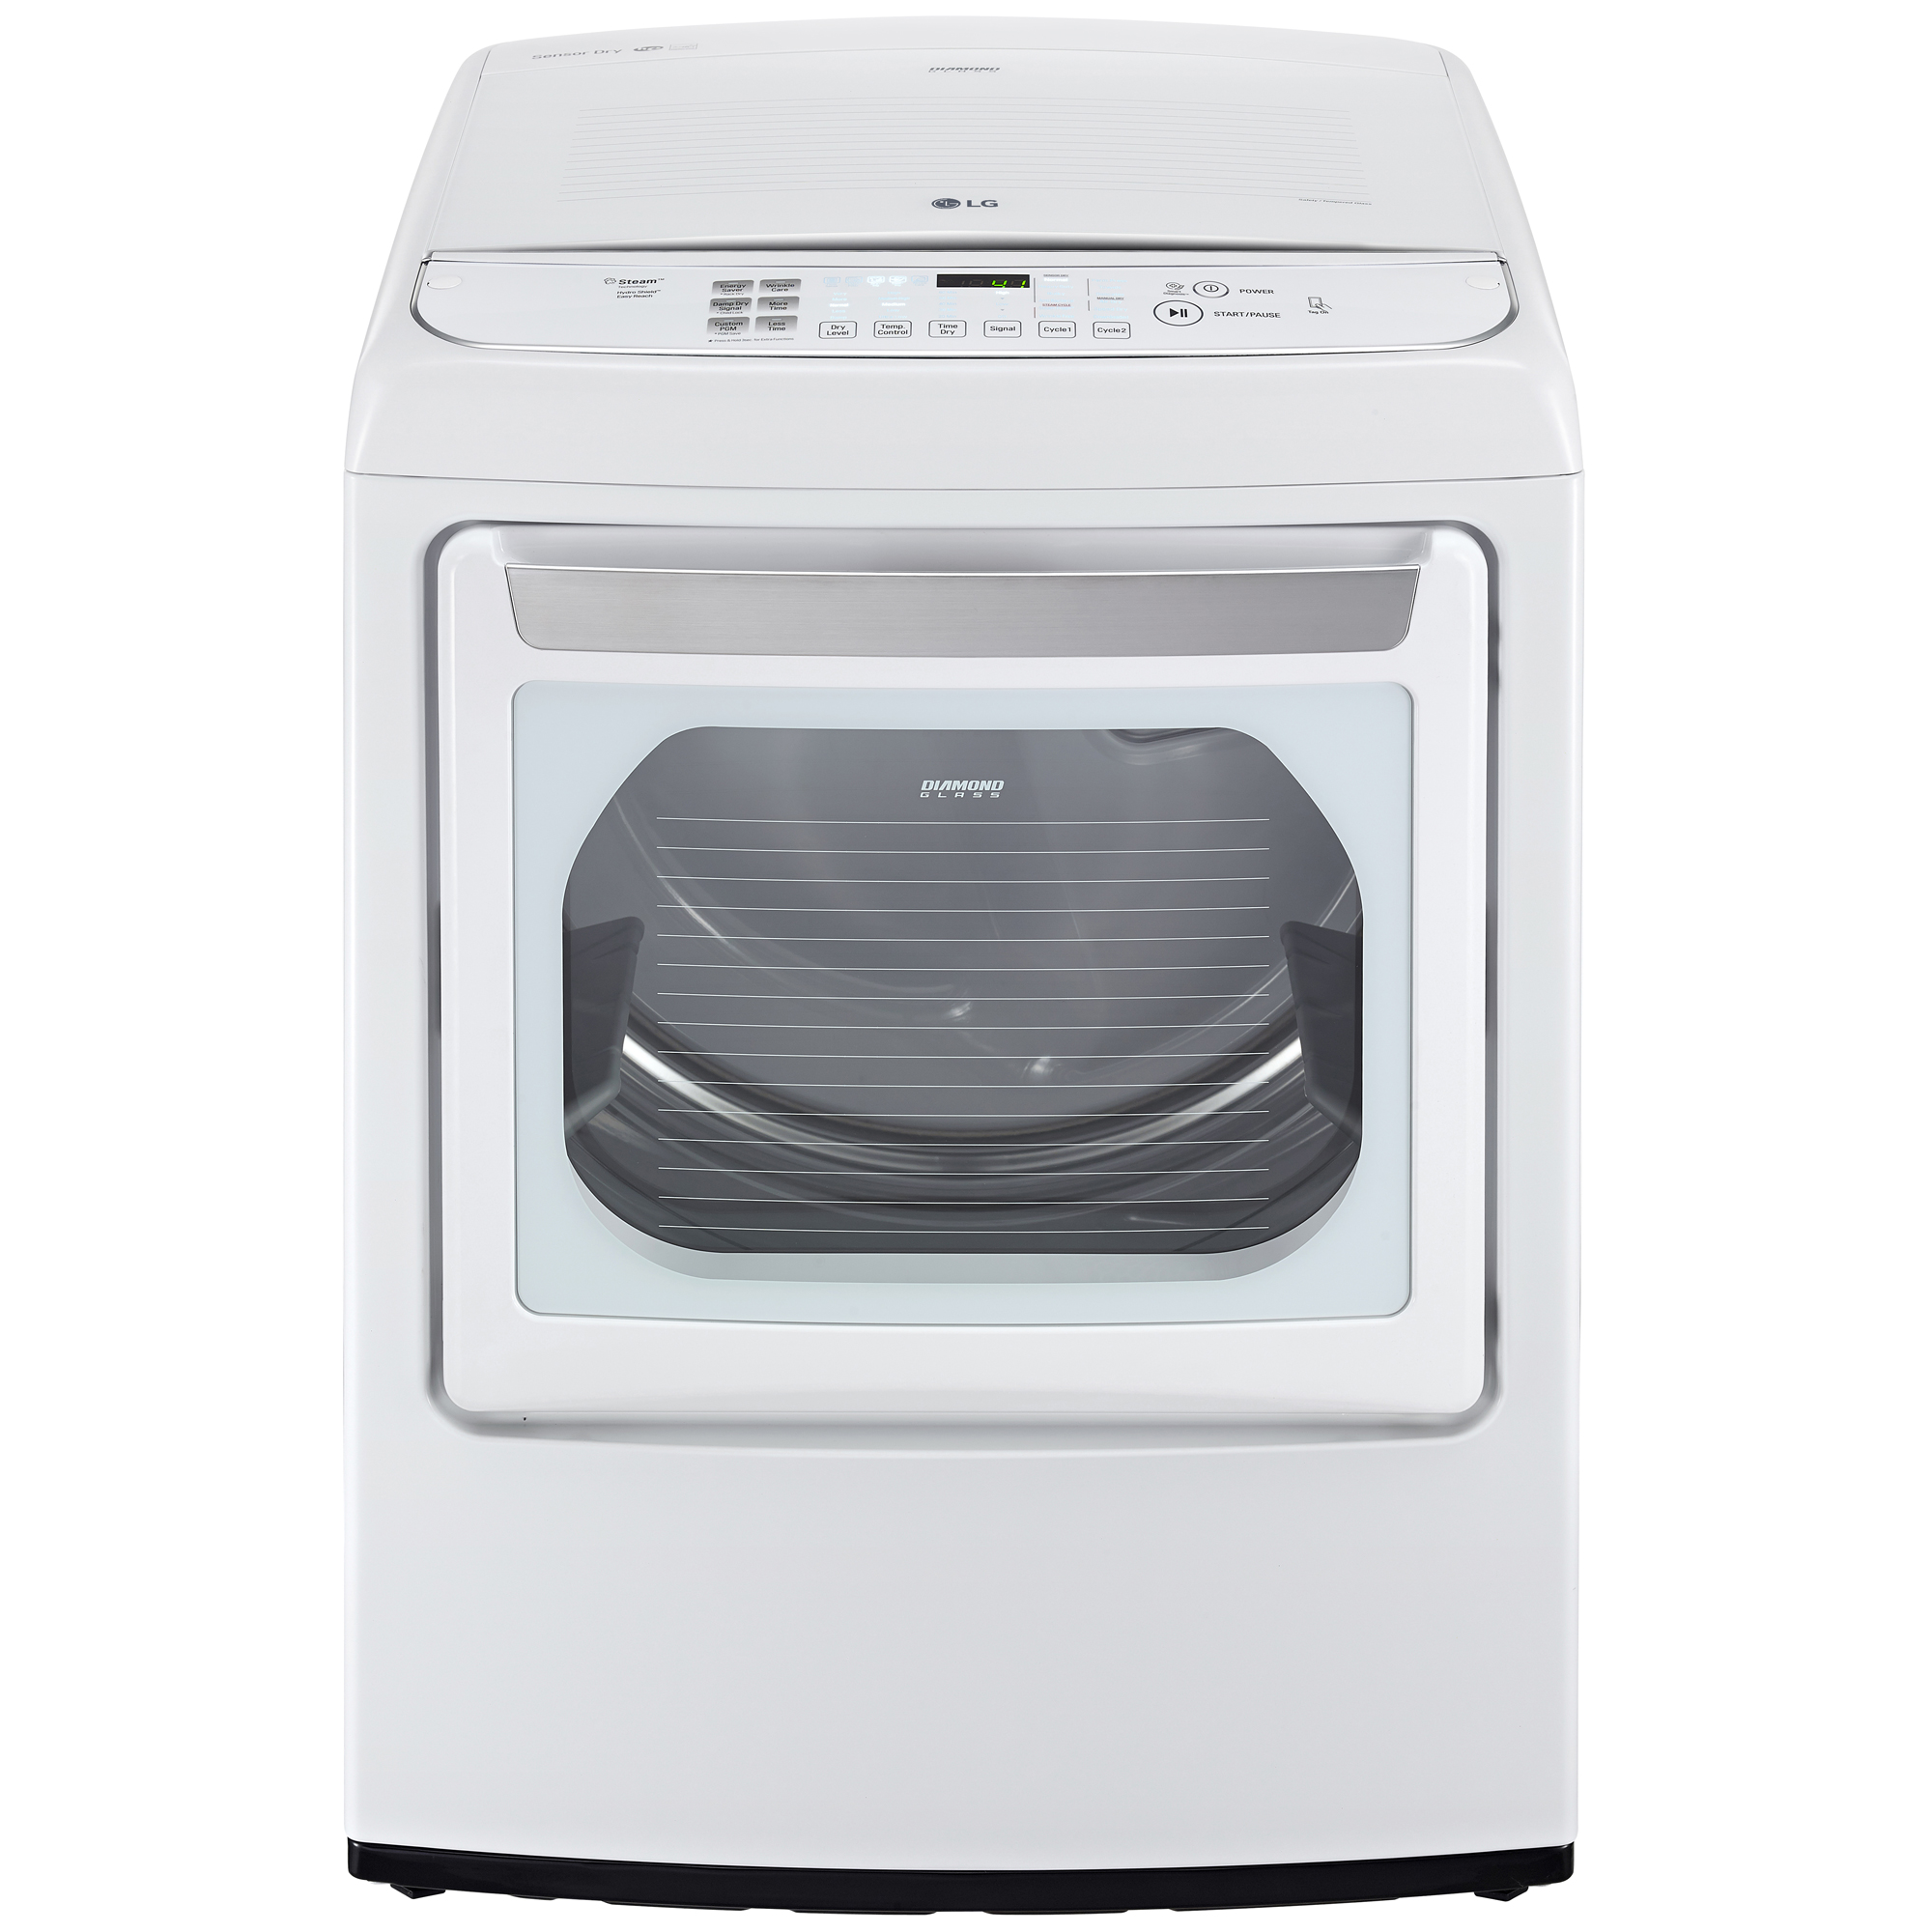 LG DLGY1702WE 7.3 cu. ft. Steam Gas Dryer w/ Front Controls and EasyLoad™ Door – White